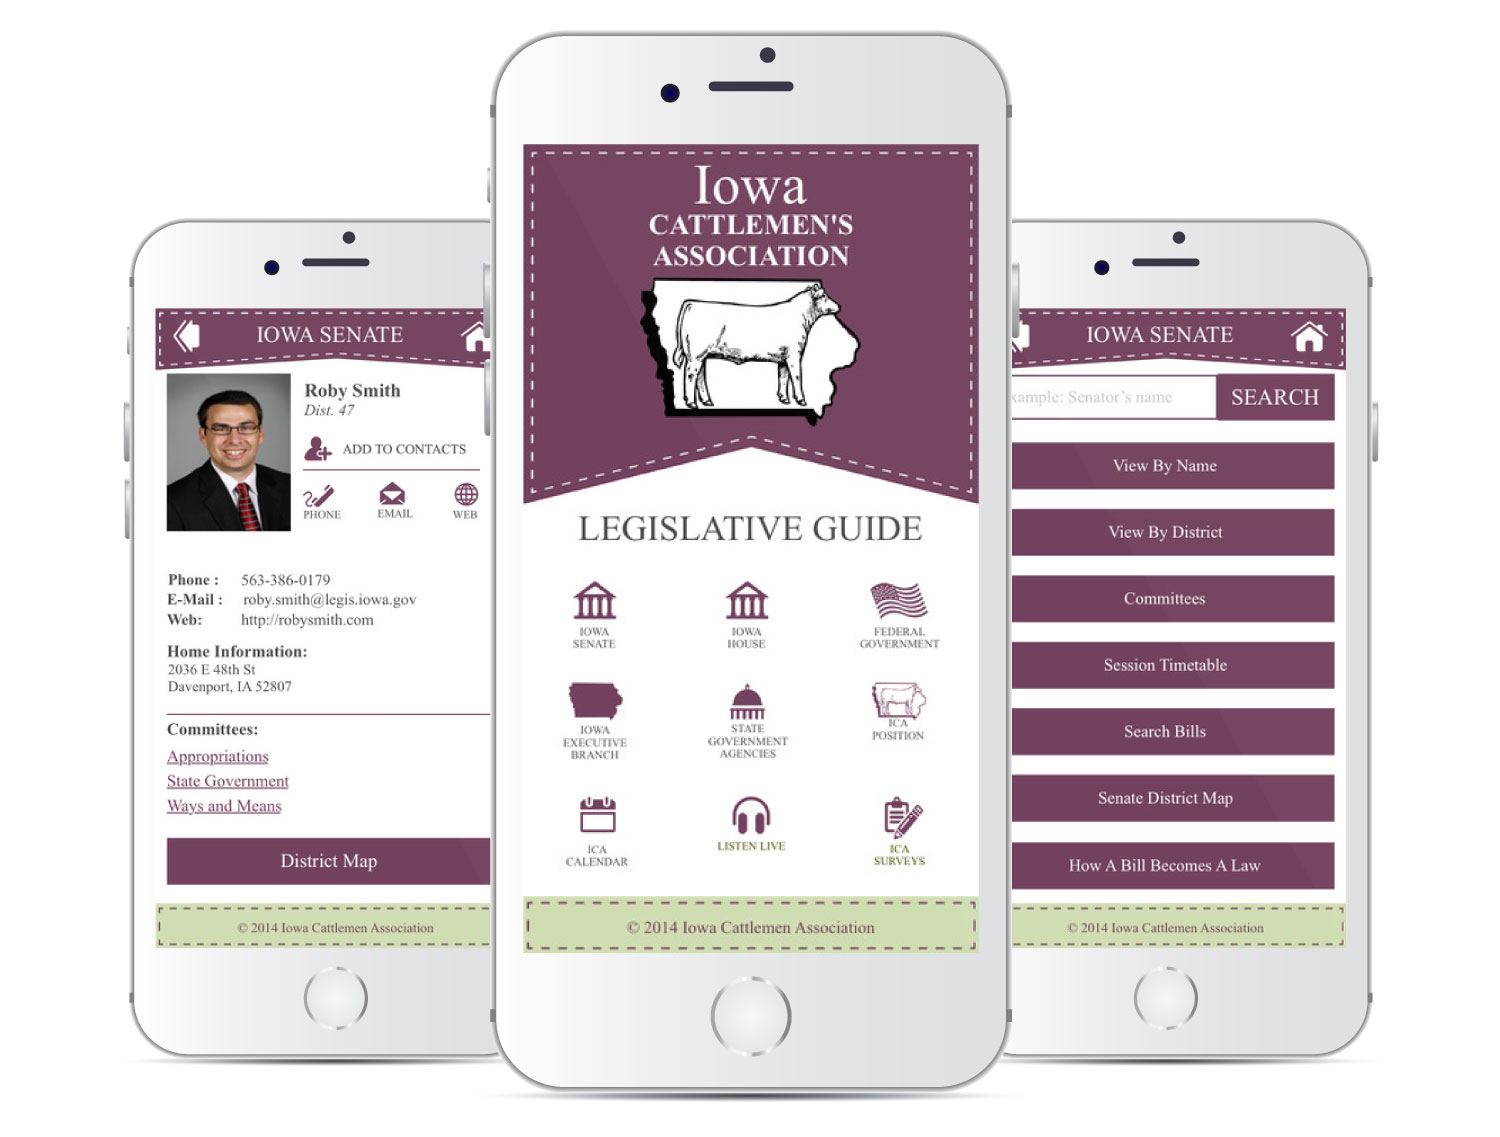 Iowa Cattlemen's Association Mobile App